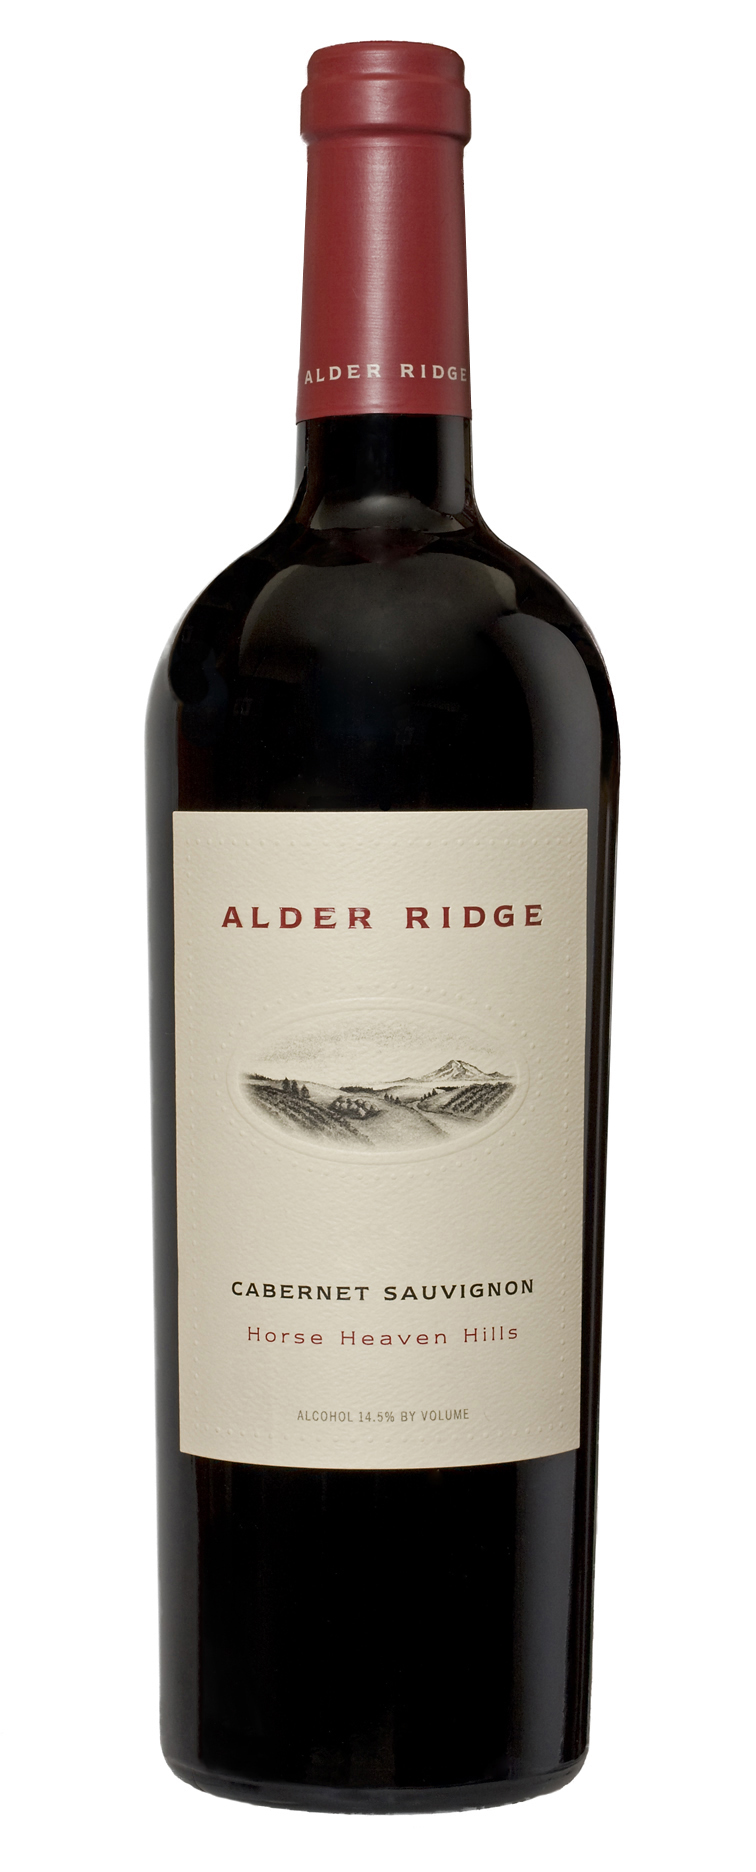 Alder Ridge Cabernet Sauvignon Bottle